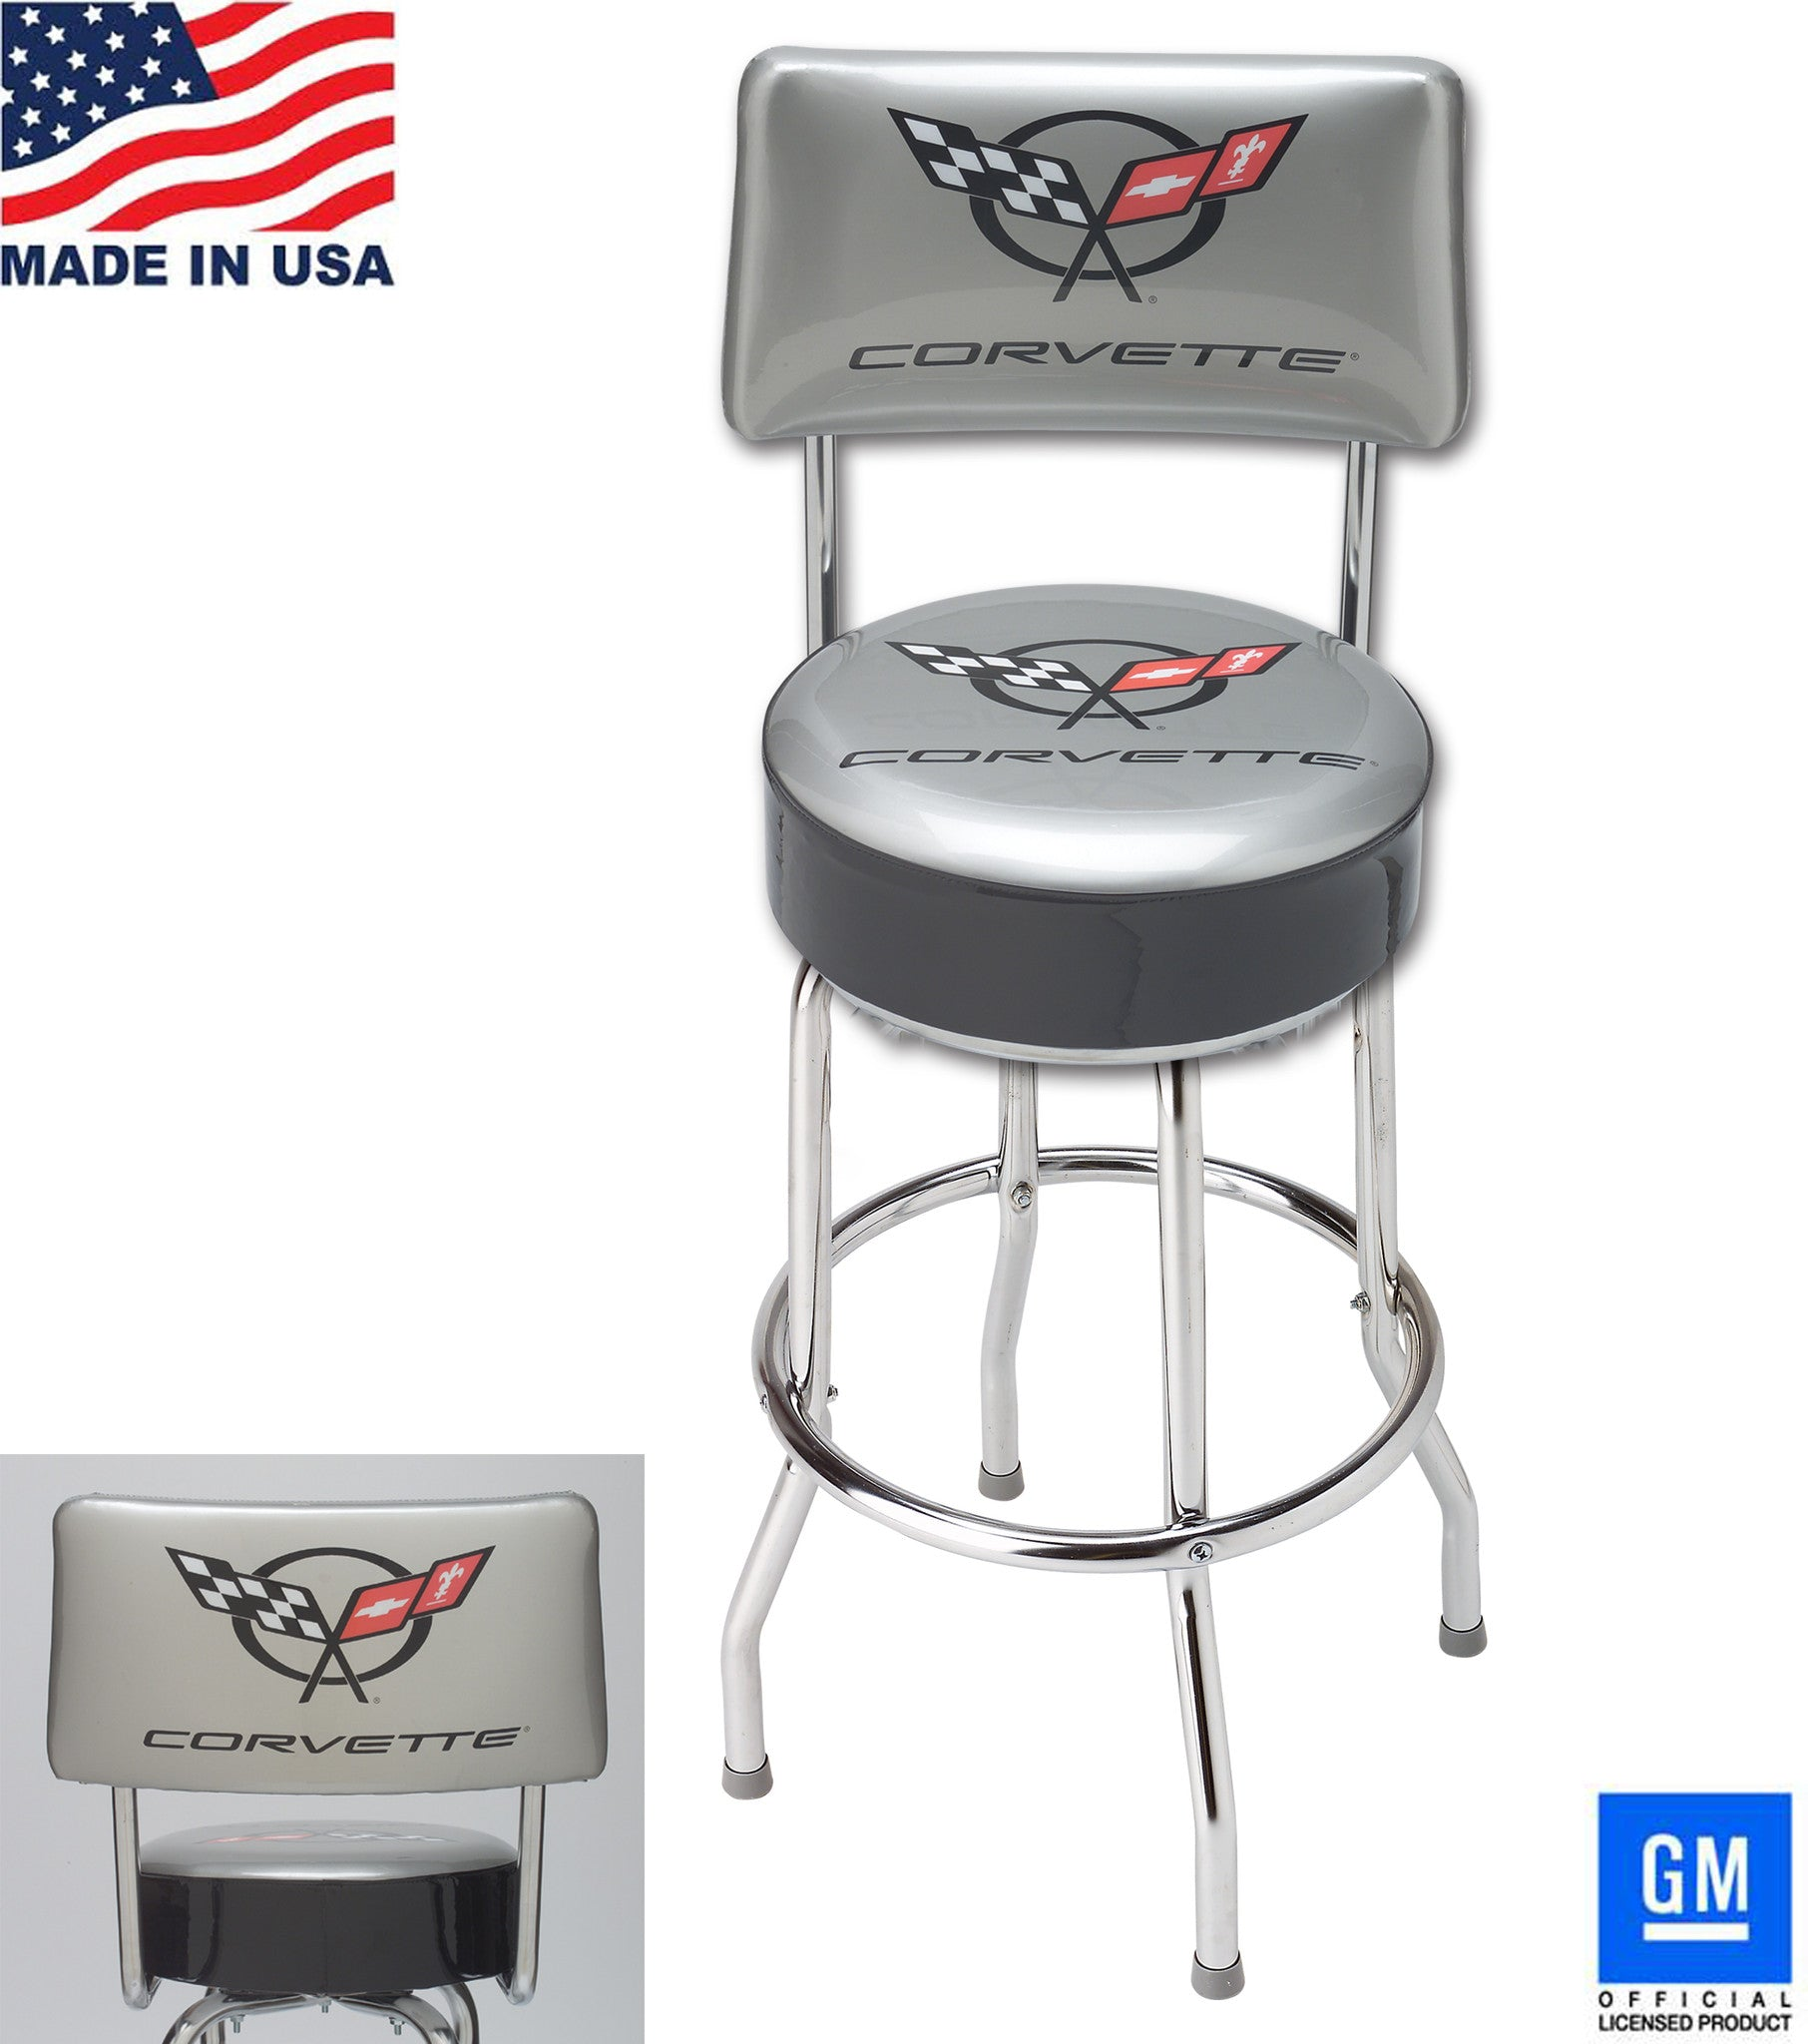 Corvette Barstool with Backrest